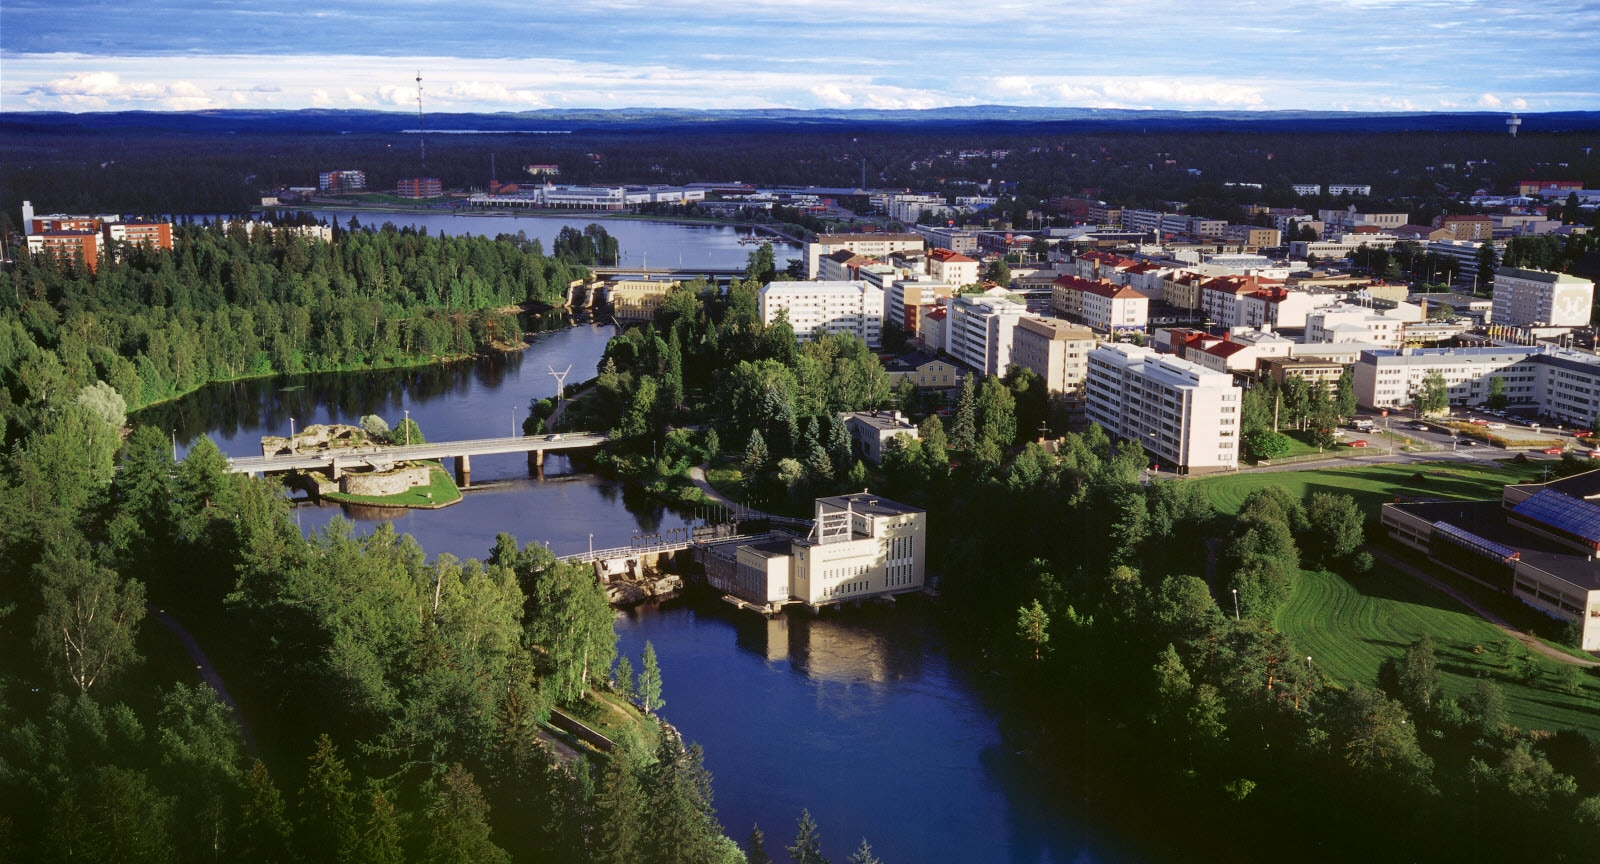 Kajaani aerial. Photographer Pekka Agarth